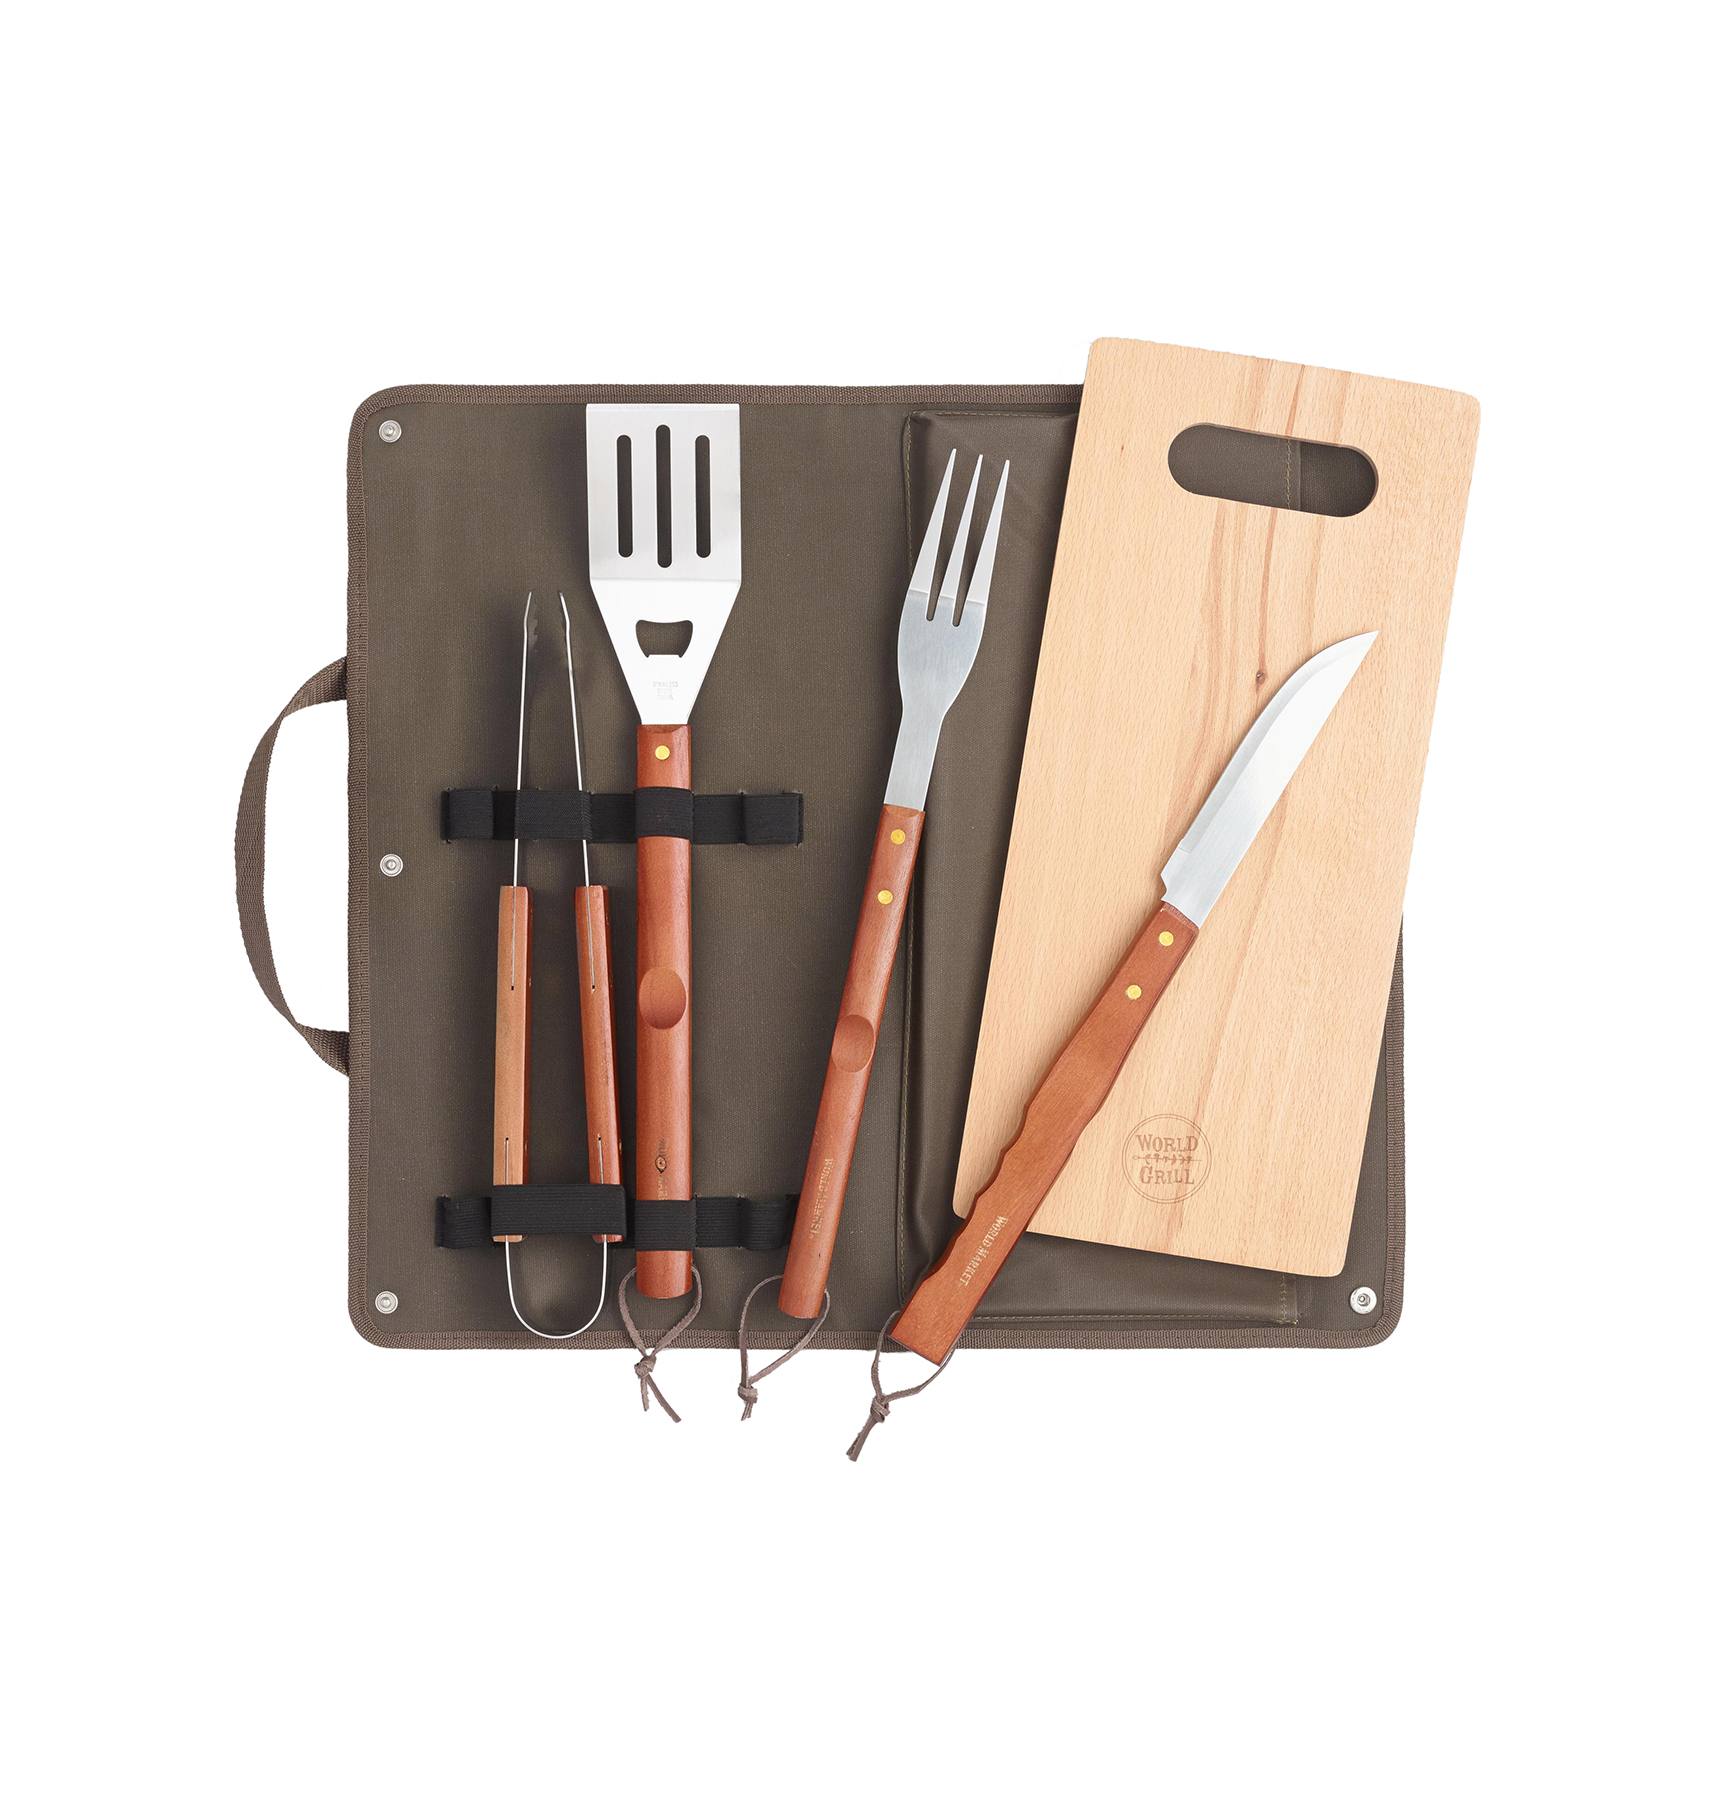 barbecue-tool-6-piece-gift-set